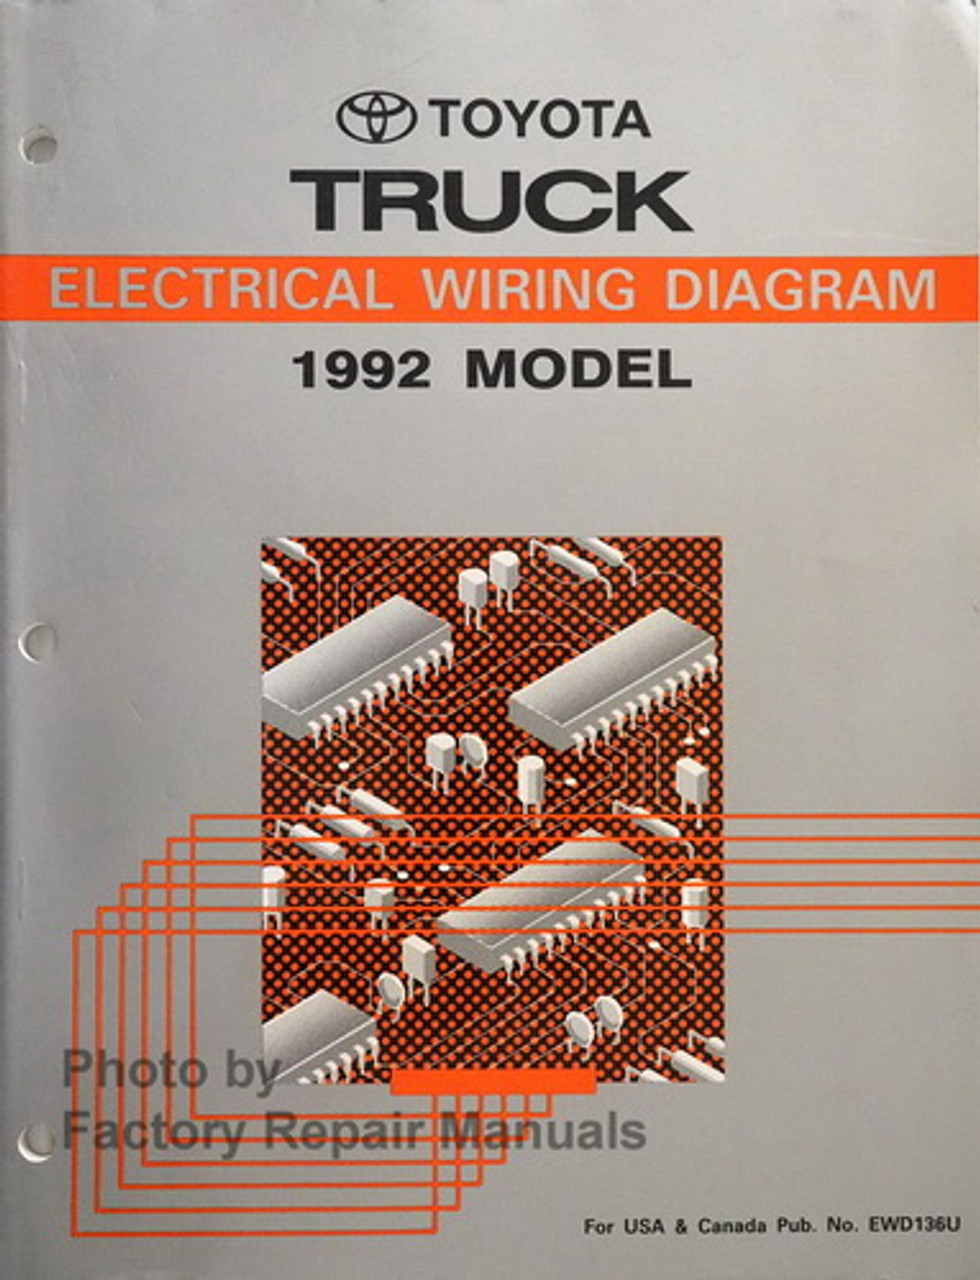 1992 Toyota Pickup Wiring Diagram from cdn11.bigcommerce.com